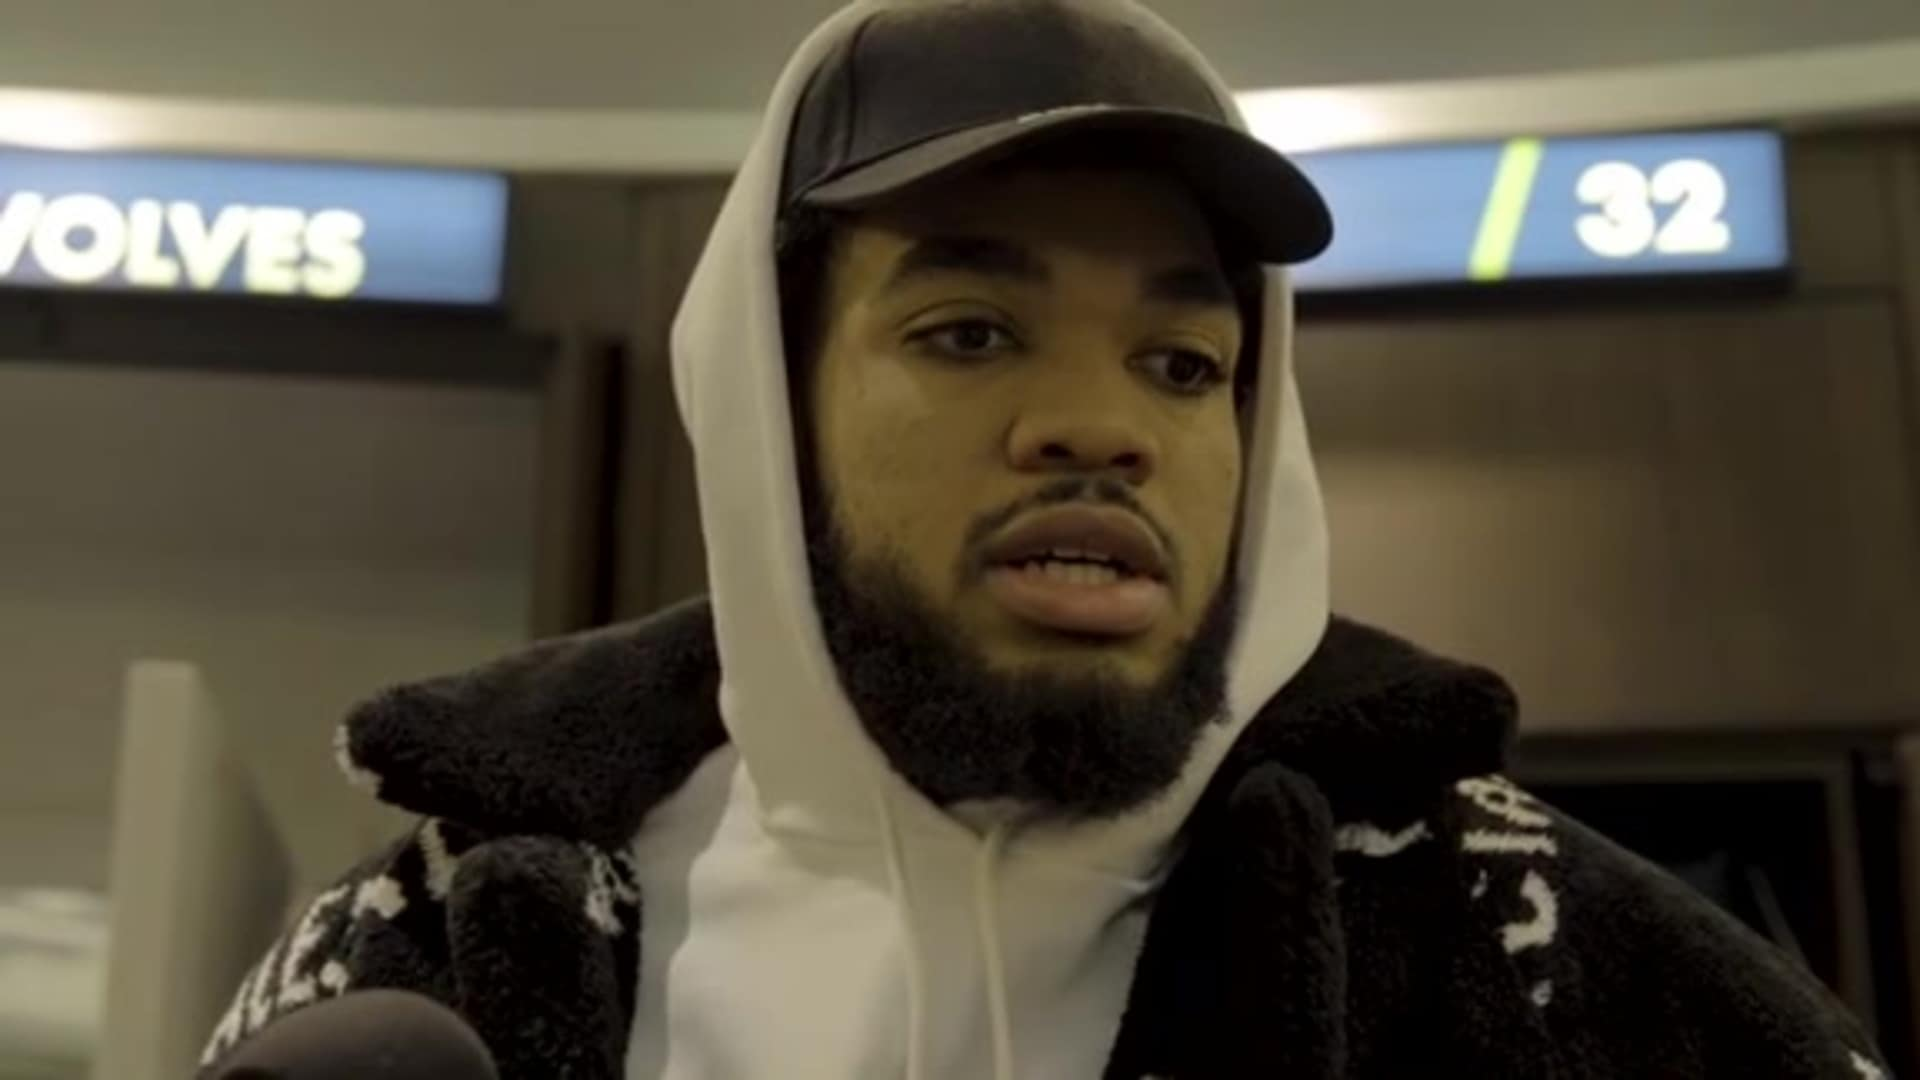 Timberwolves Center Karl-Anthony Towns After Loss To Clippers (12.13.19)